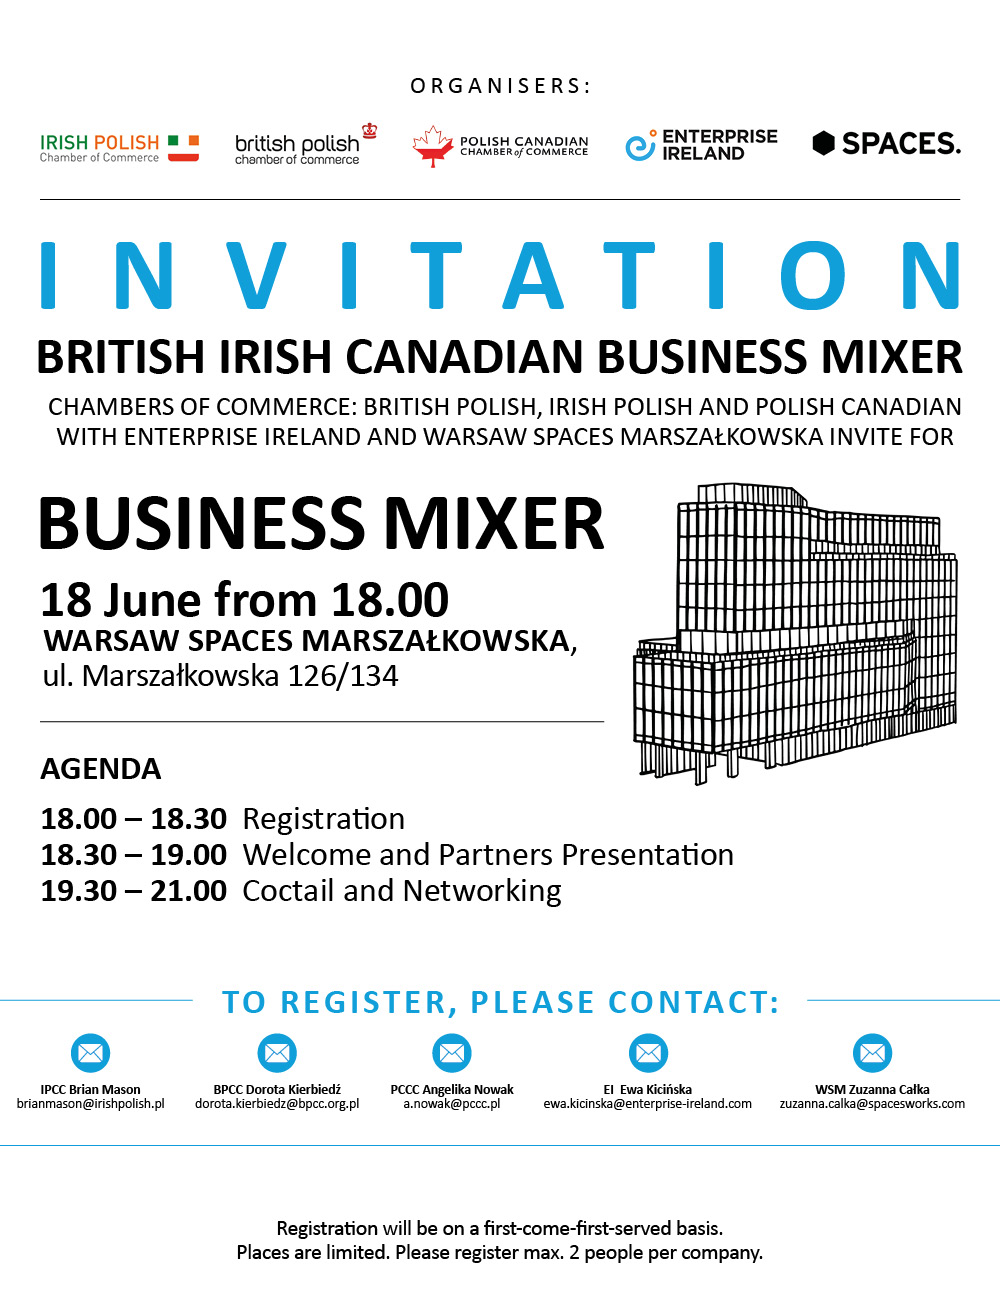 Business Mixer Invitation June 18.jpg